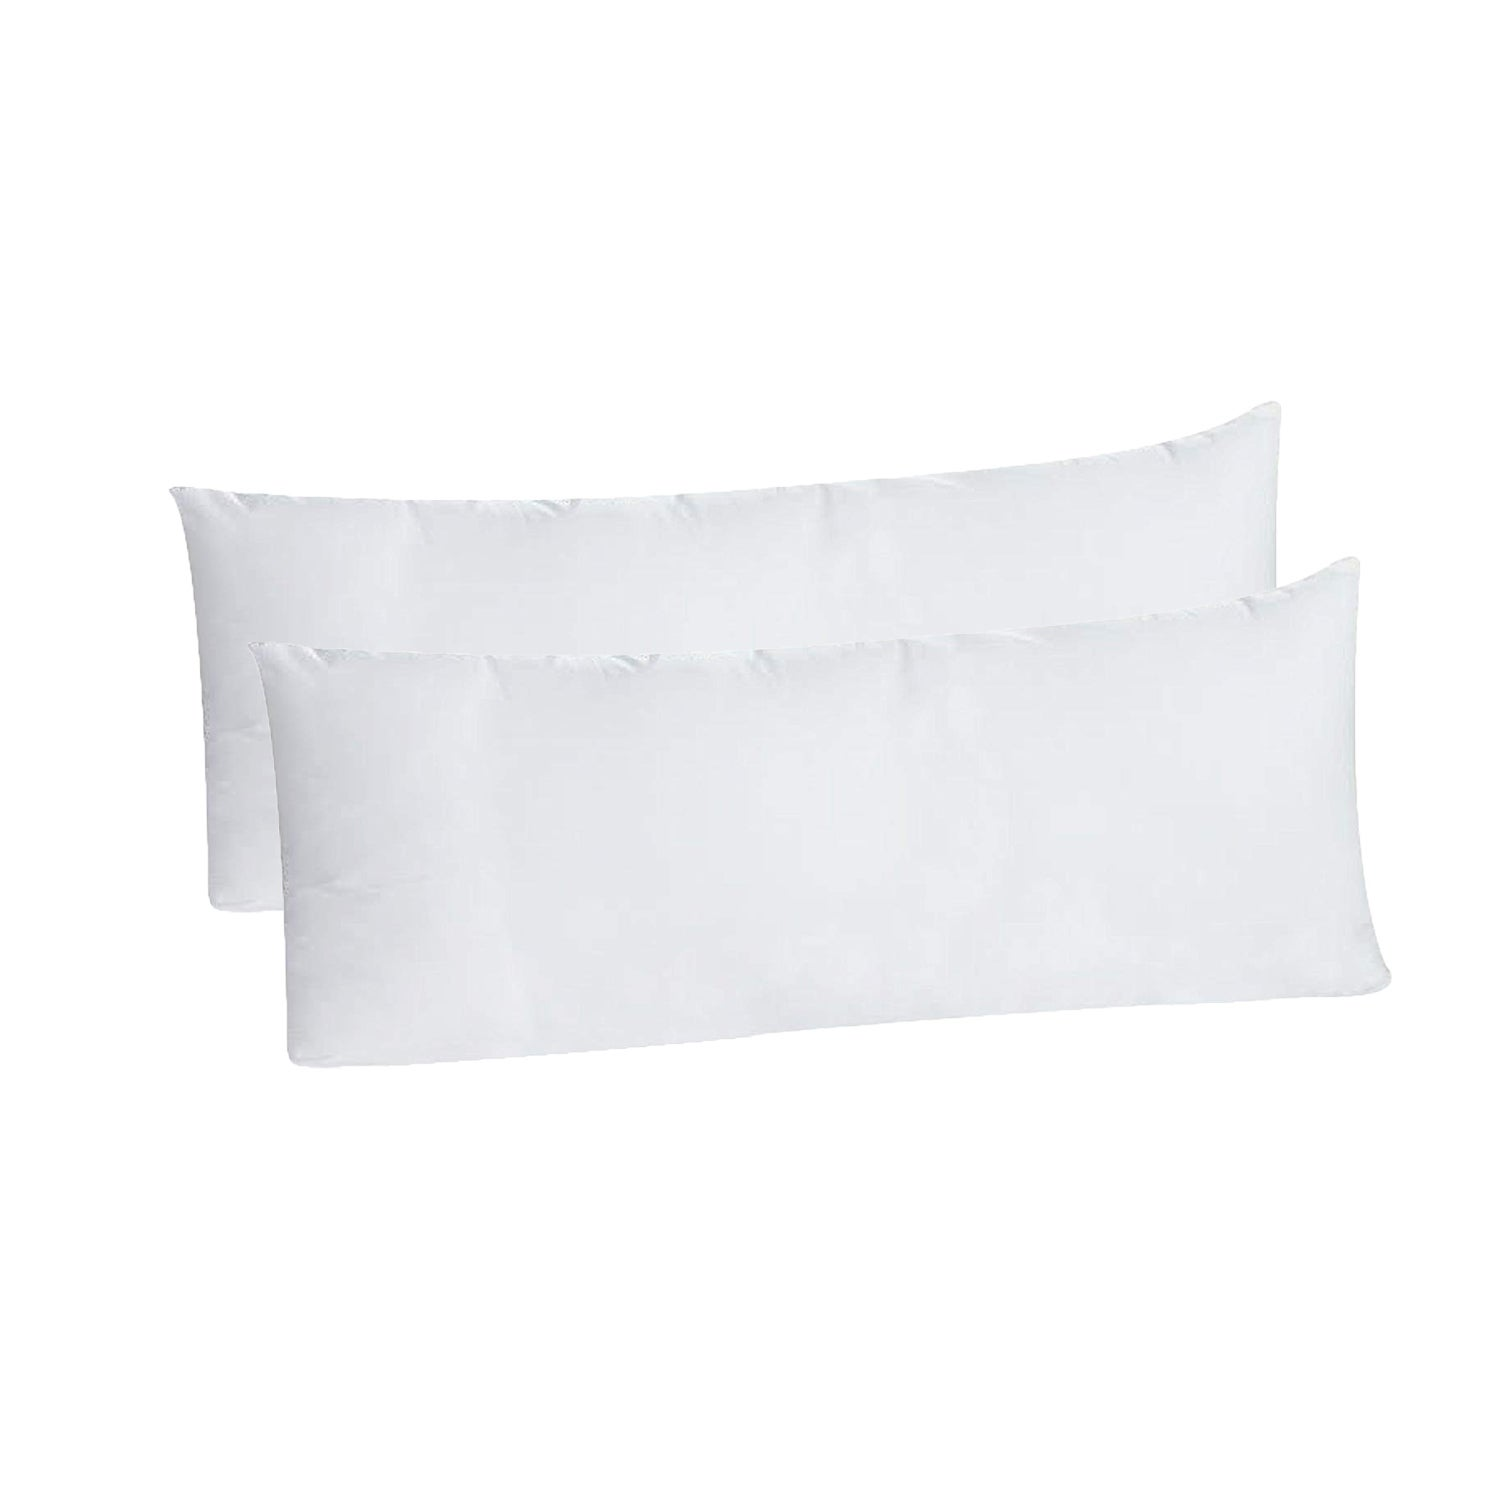 White Egyption Cotton And Microfiber Body Pillowcases Set Of 2 On Free Shipping Orders Over 45 8238543